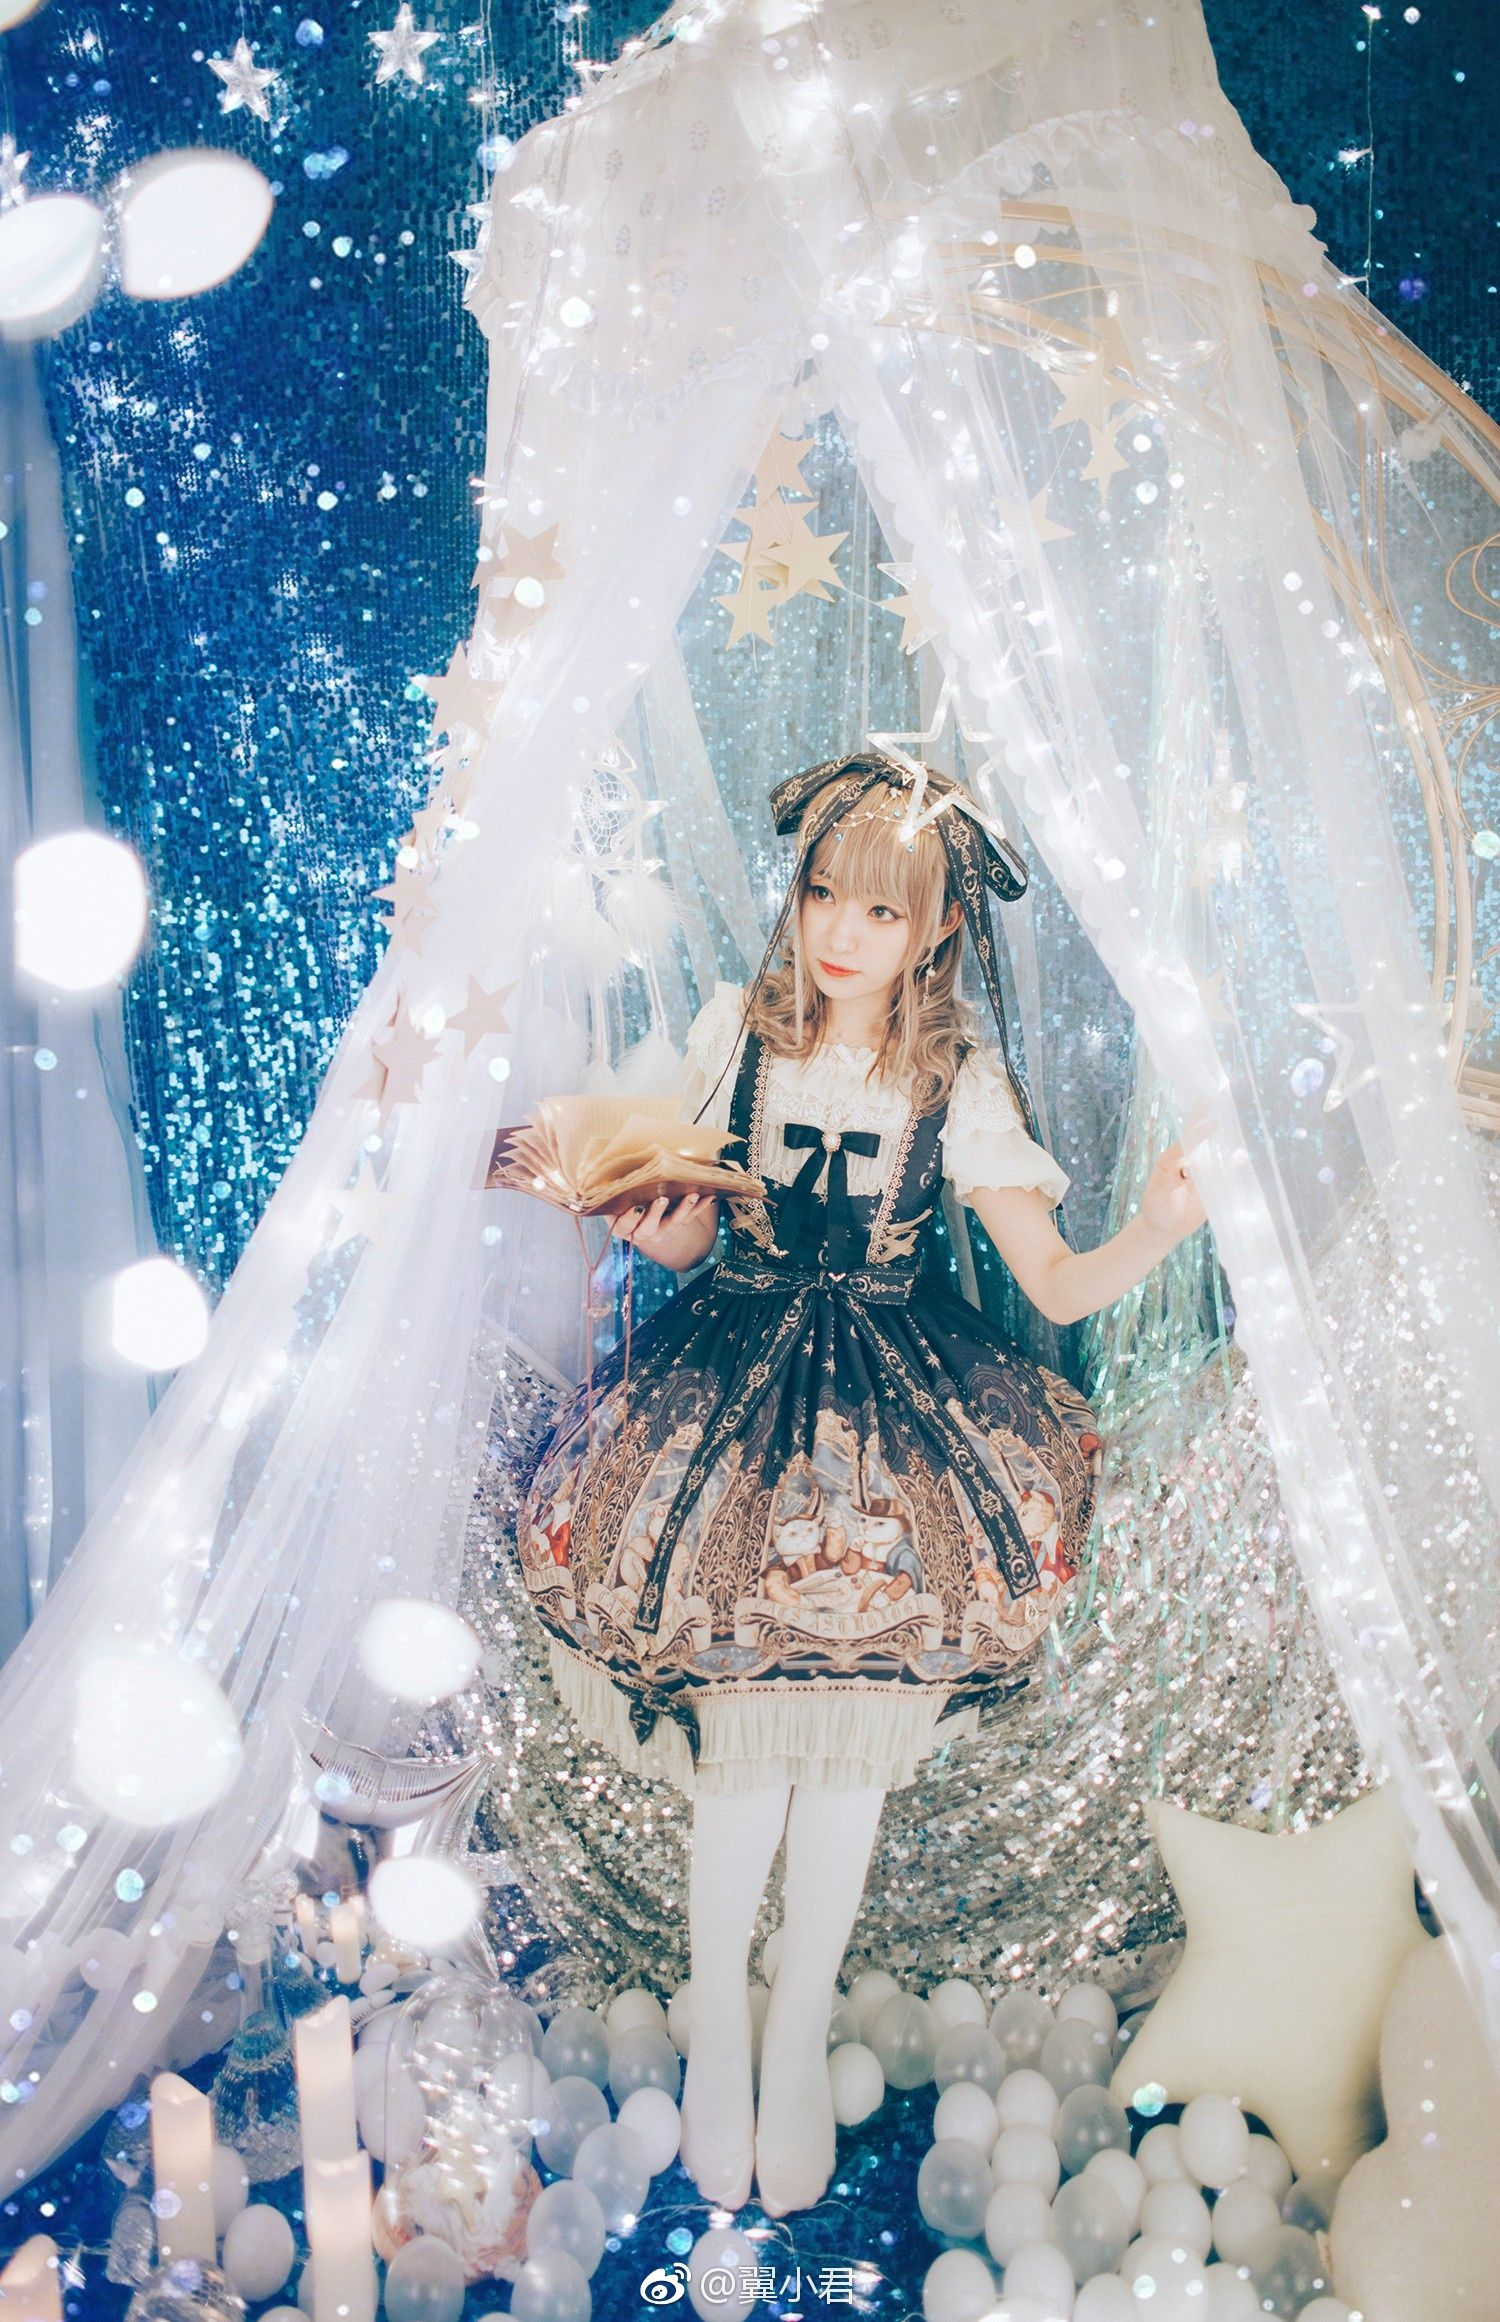 Pin by german on lolas pinterest kawaii girl clothes and girls